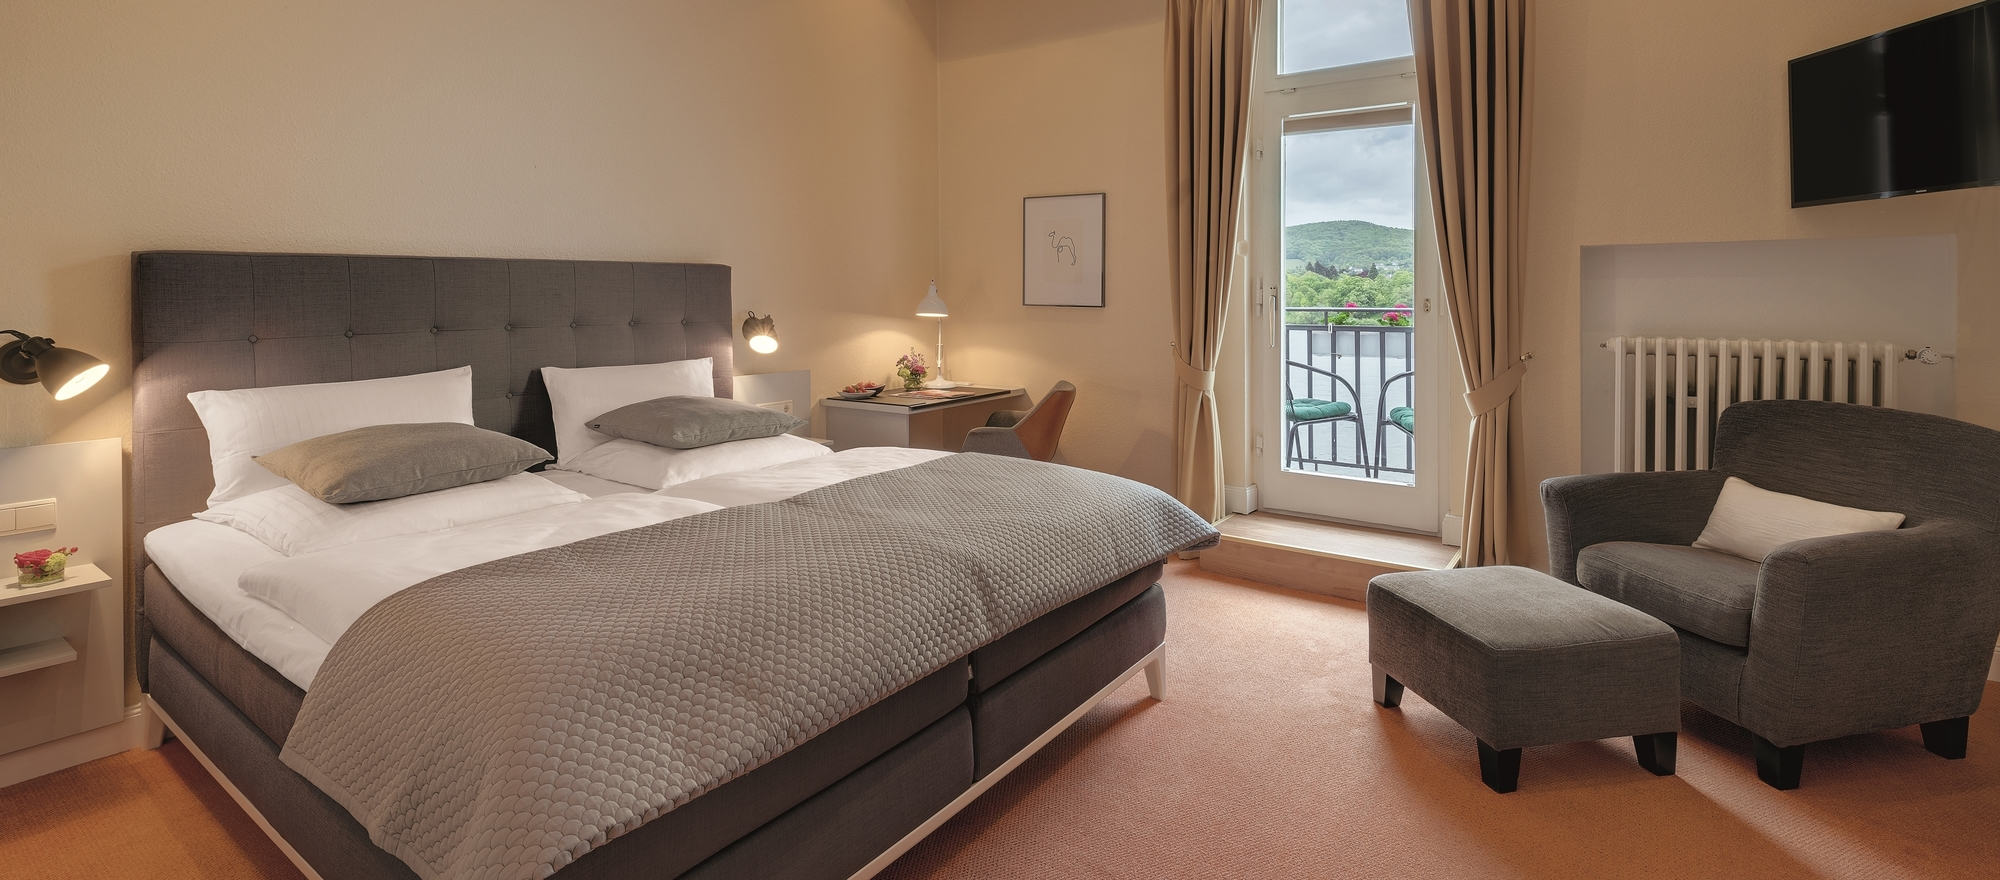 Double room  in Ringhotel Rheinhotel Dreesen in Bonn-Bad Godesberg, 4-star hotel in the metropolitan region Bonn